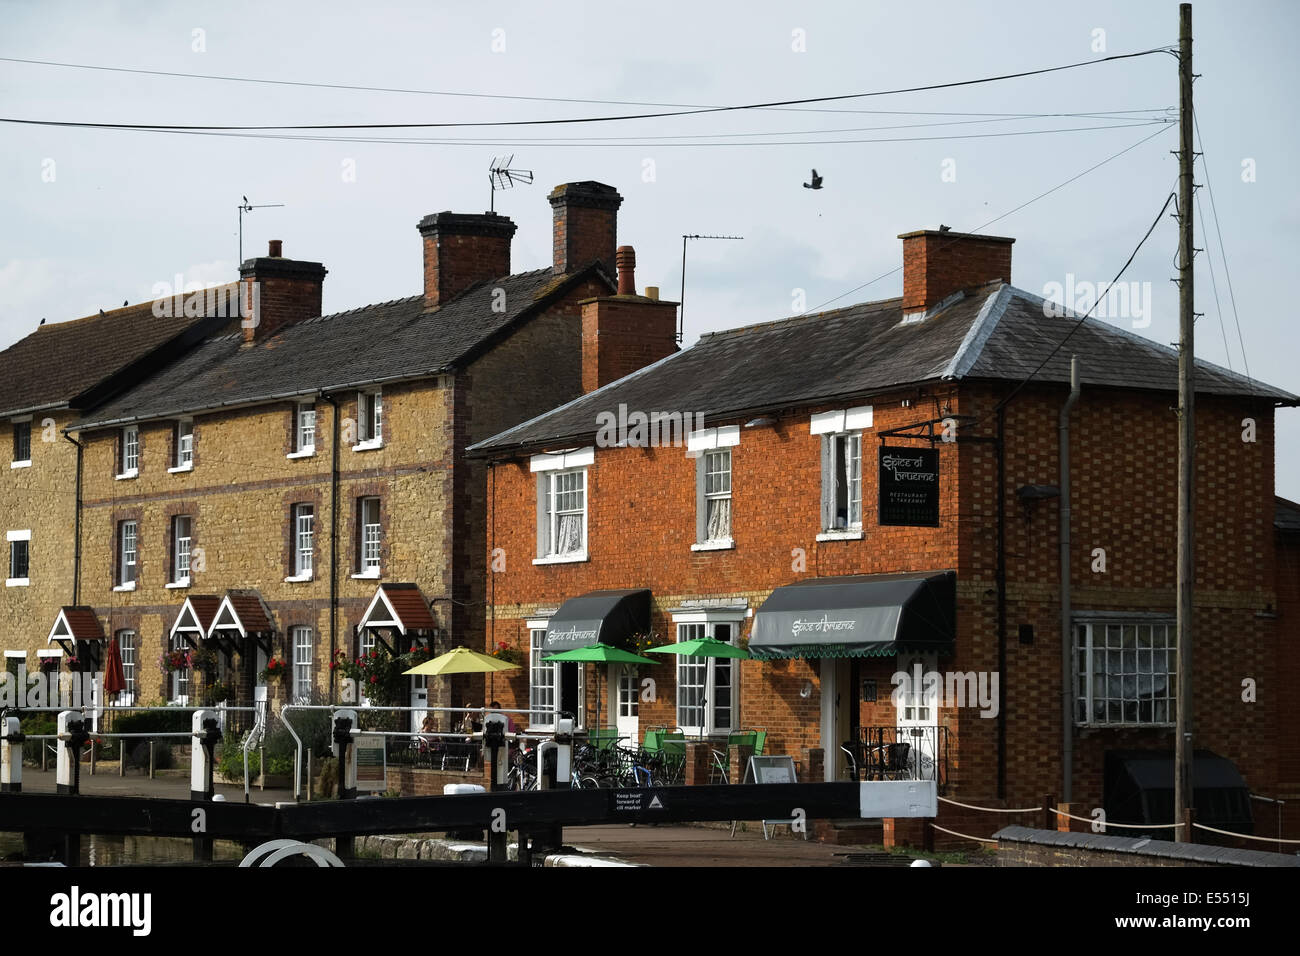 Stoke Bruerne, Northamptonshire and the Spice of Bruerne Indian Restaurant - Stock Image